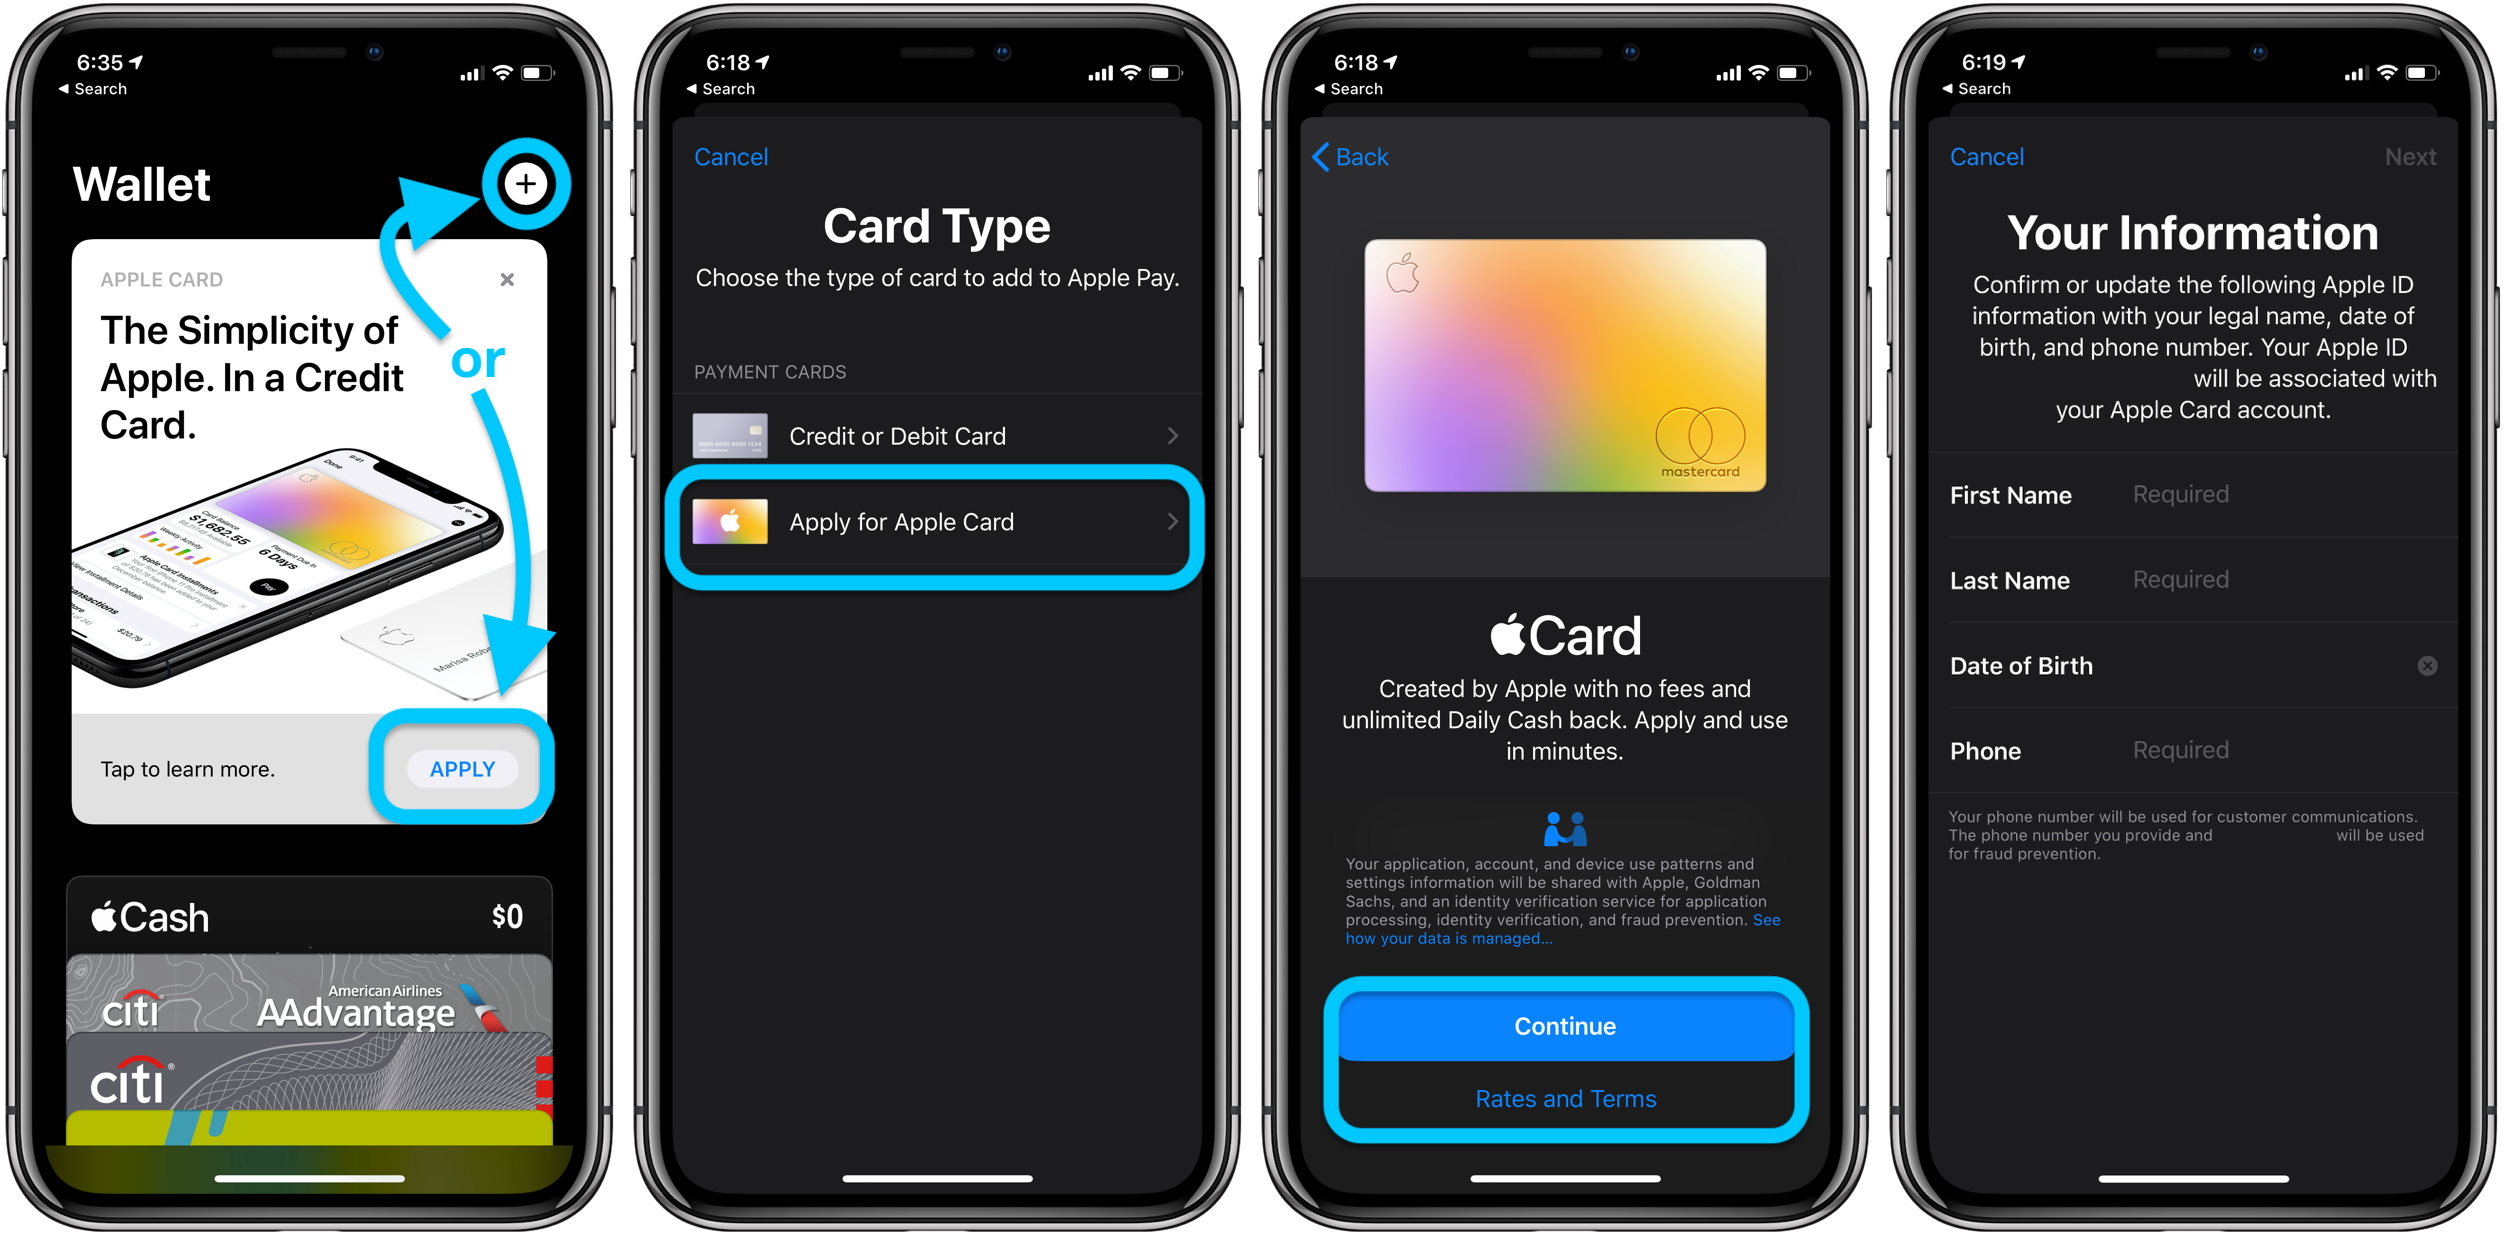 How to apply for Apple Card walkthrough 1